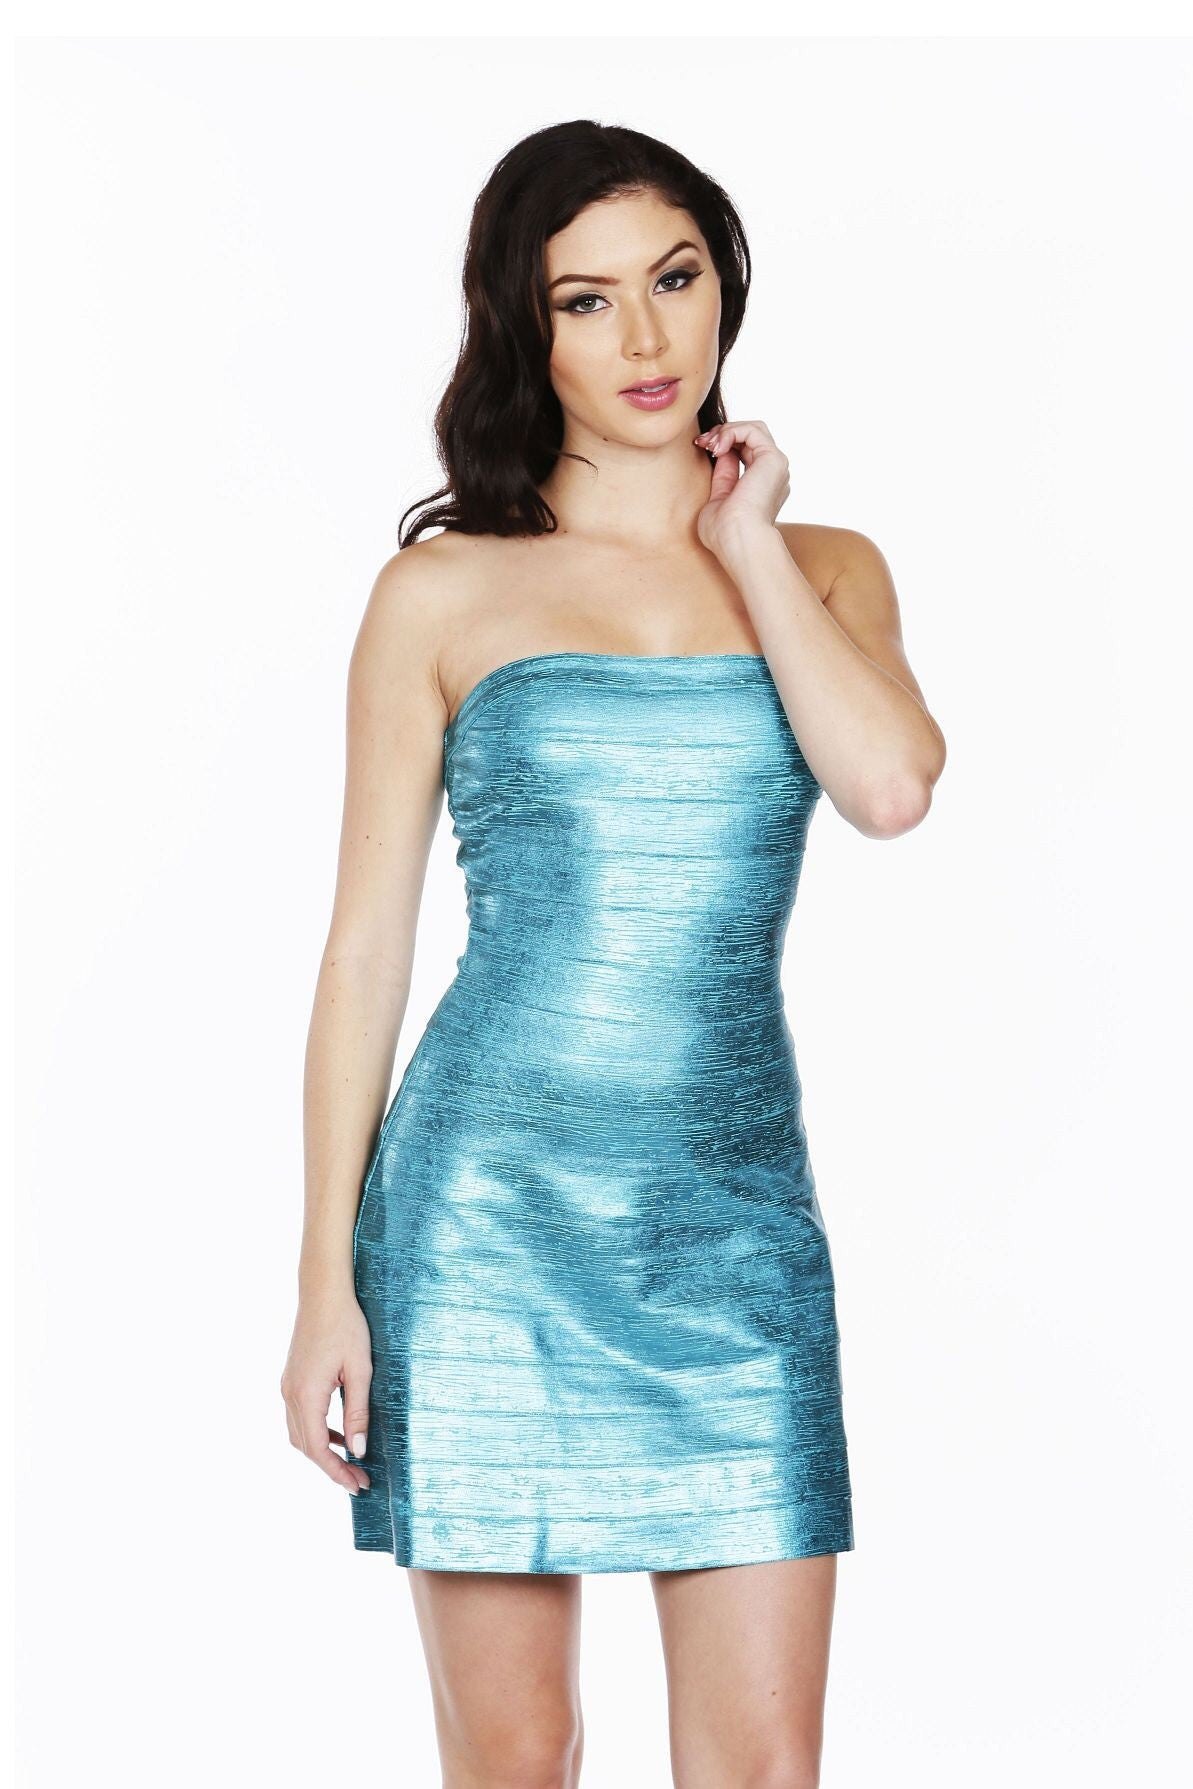 Naughty Grl Strapless Fit & Flare Bandage Dress - Teal - NaughtyGrl